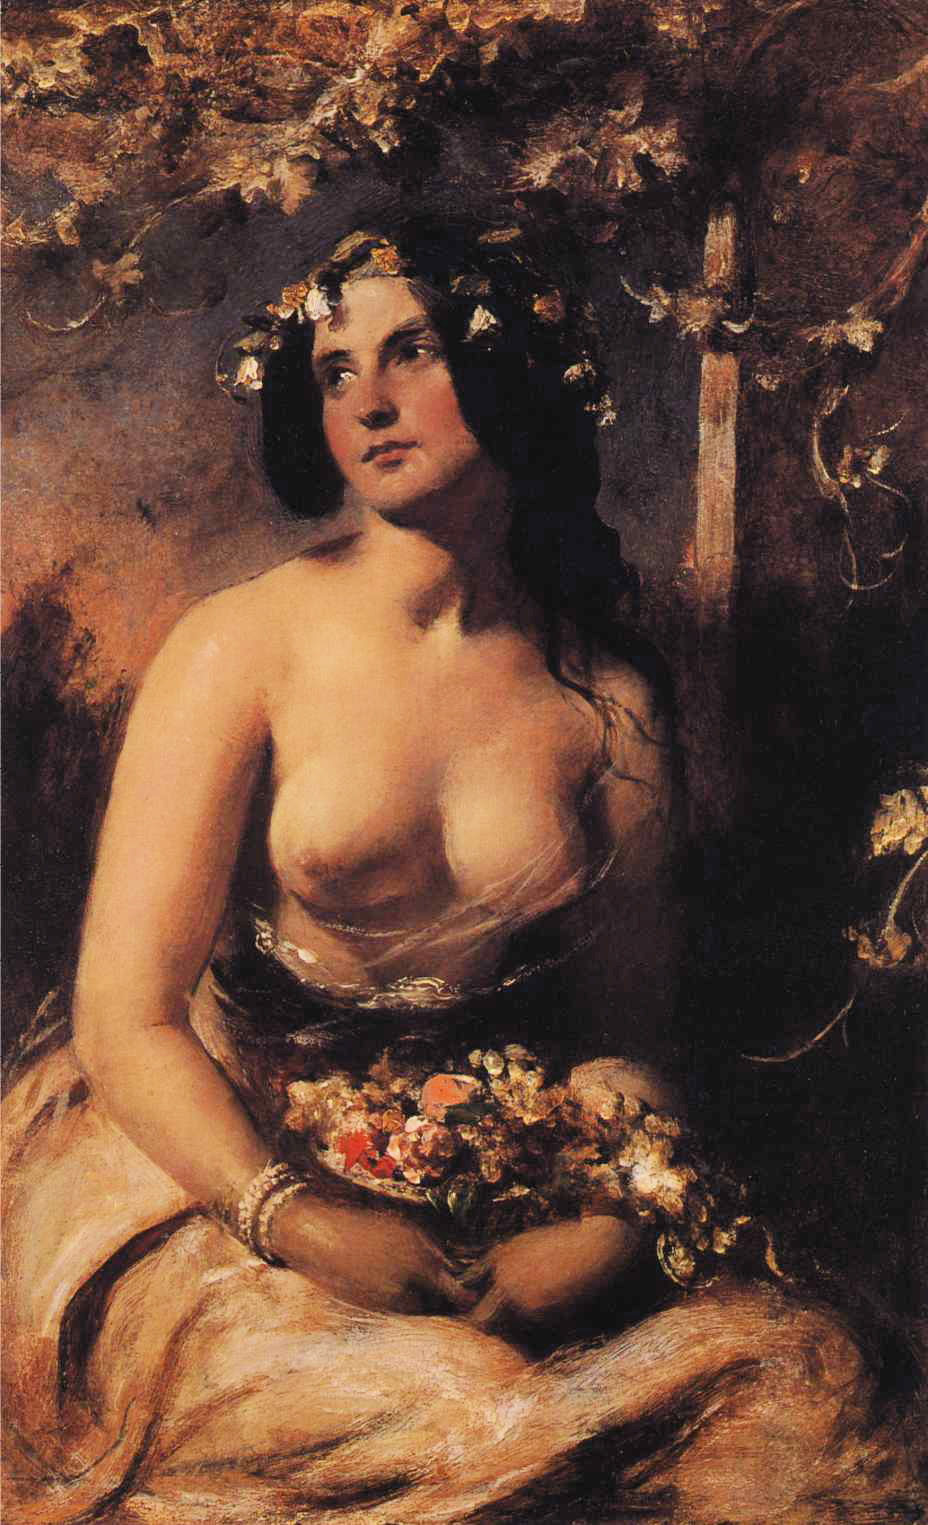 http://upload.wikimedia.org/wikipedia/commons/f/f9/William_Etty_-_The_Flower_Girl.JPG